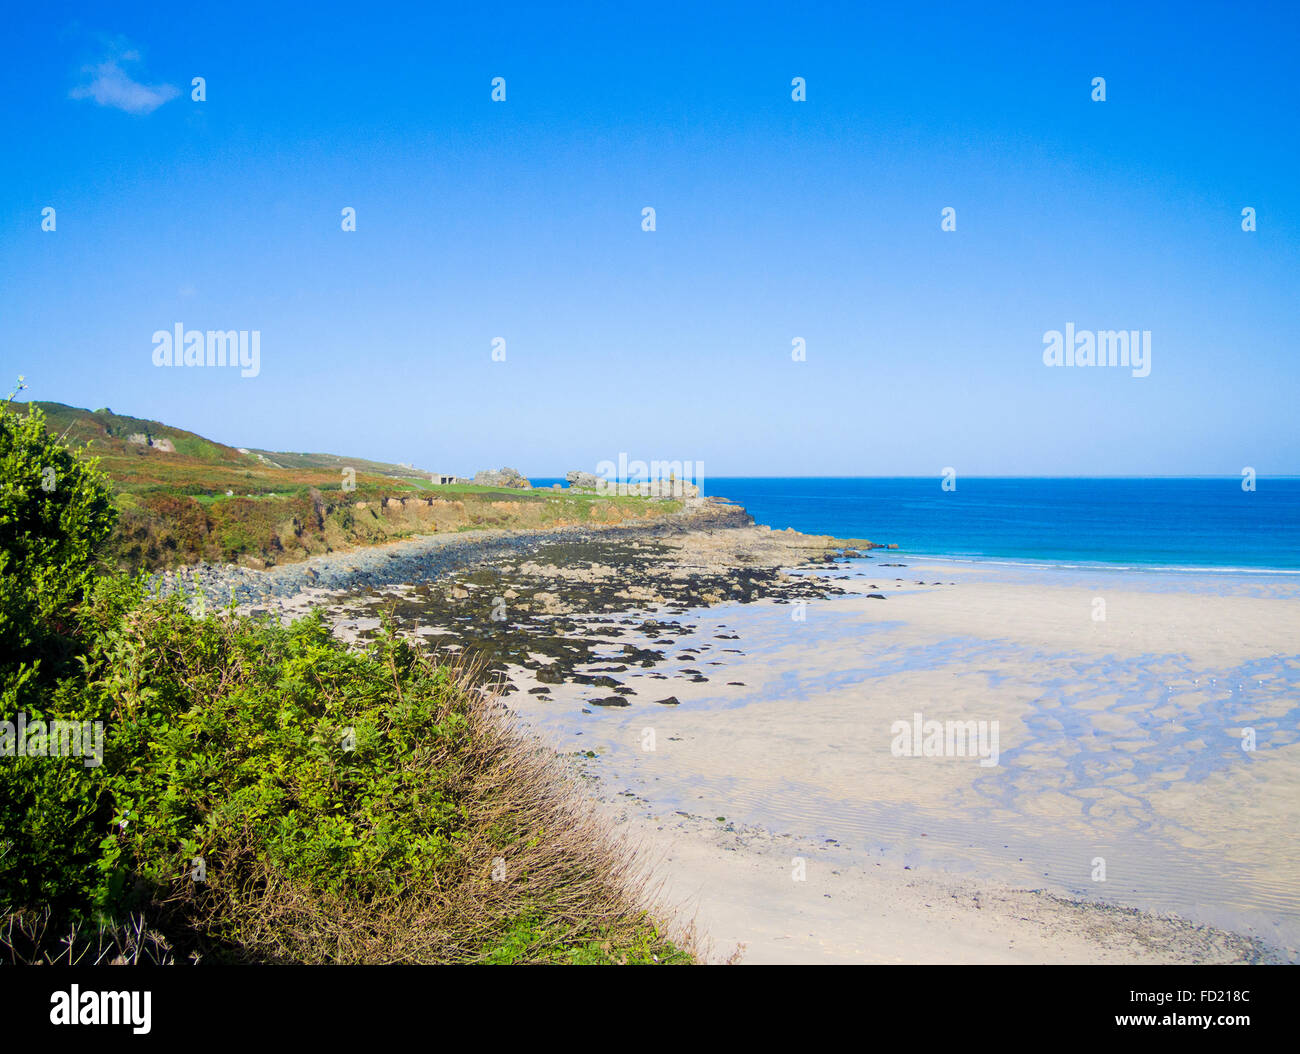 Porthmeor Beach & Carrick Du Headland, St Ives, Cornwall, England, UK in Summer - Stock Image